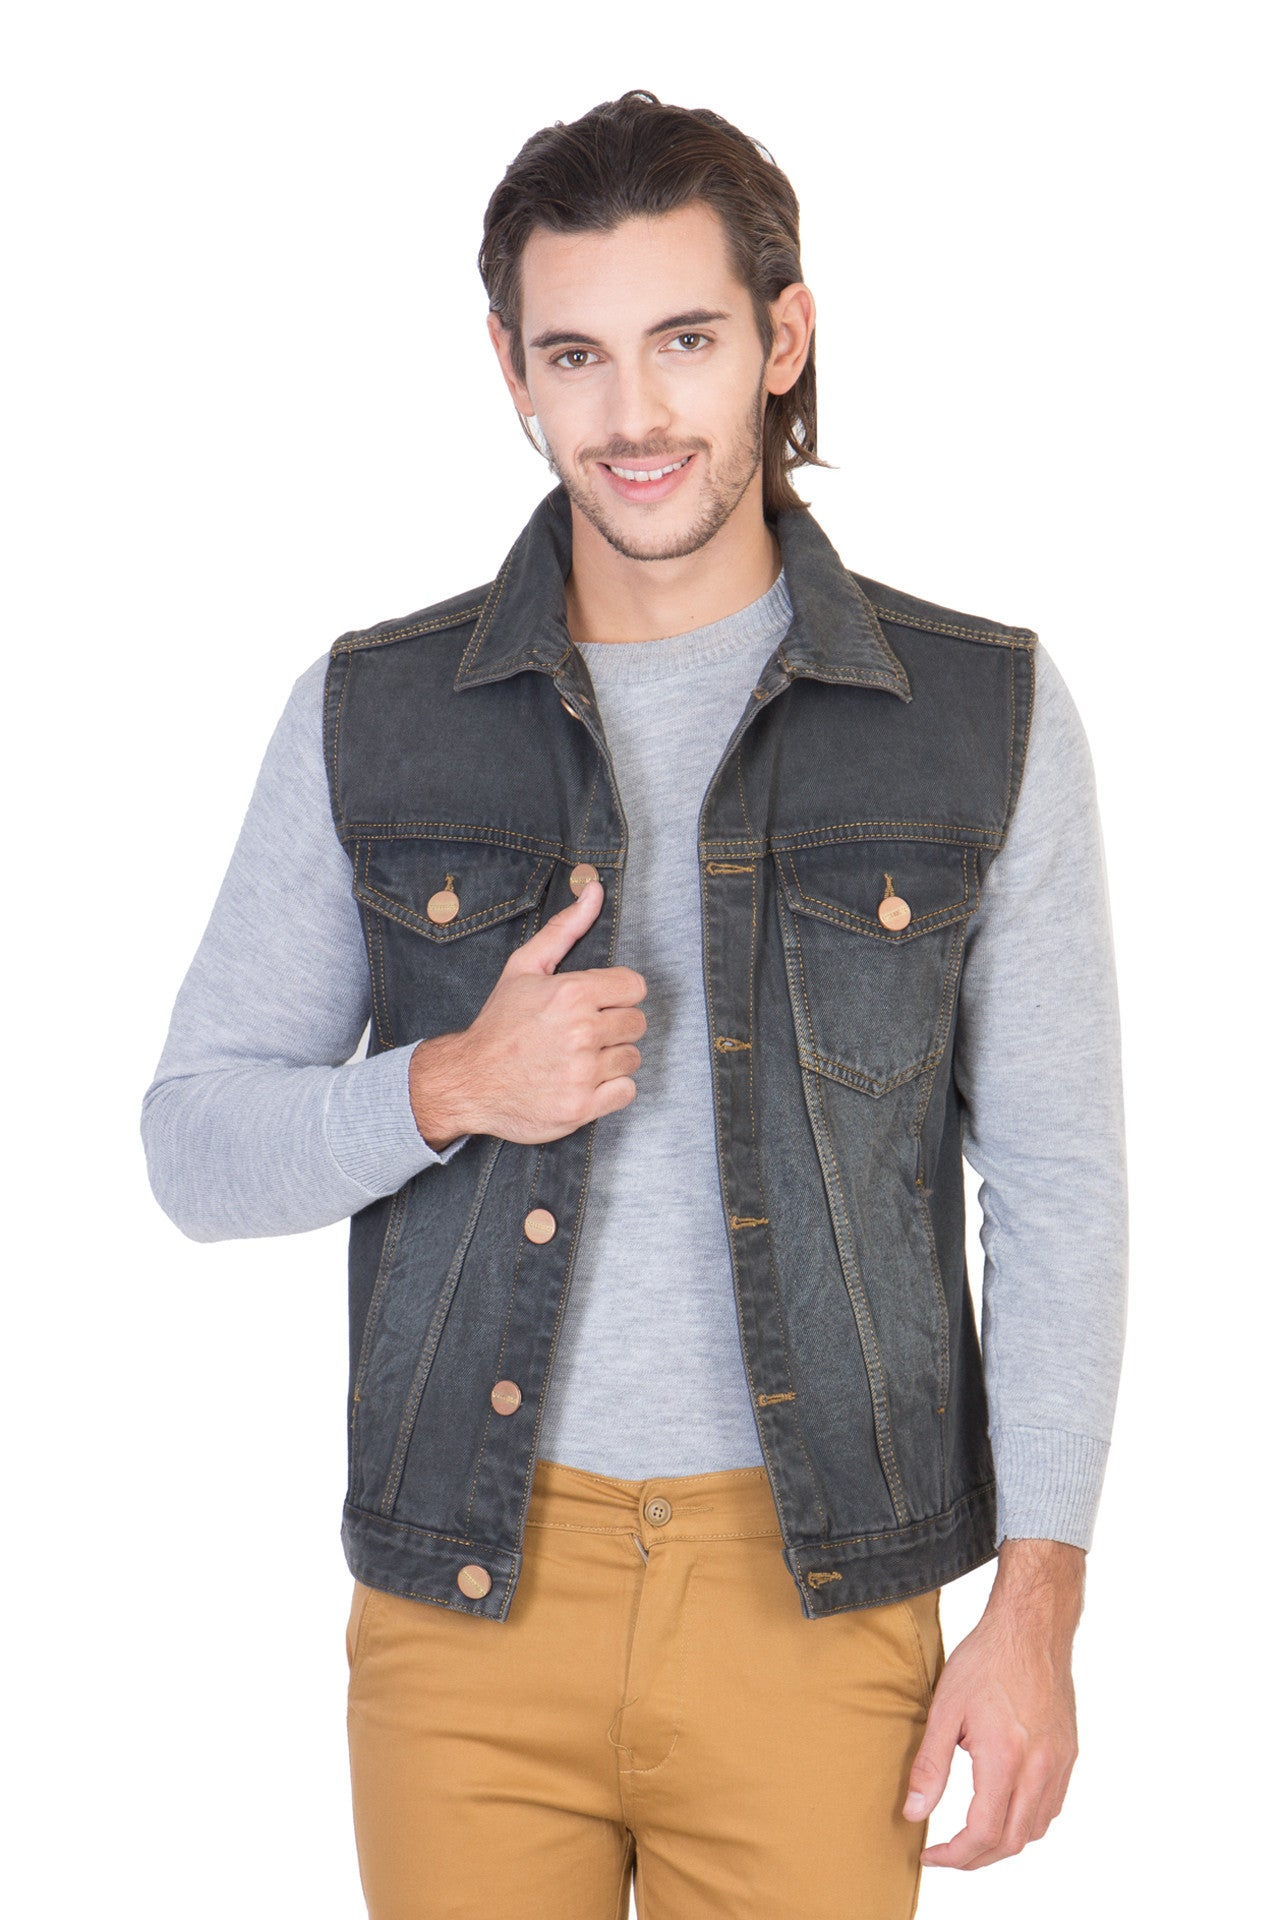 Sleeveless Tinted Black Men's Denim Jacket with Brass Button